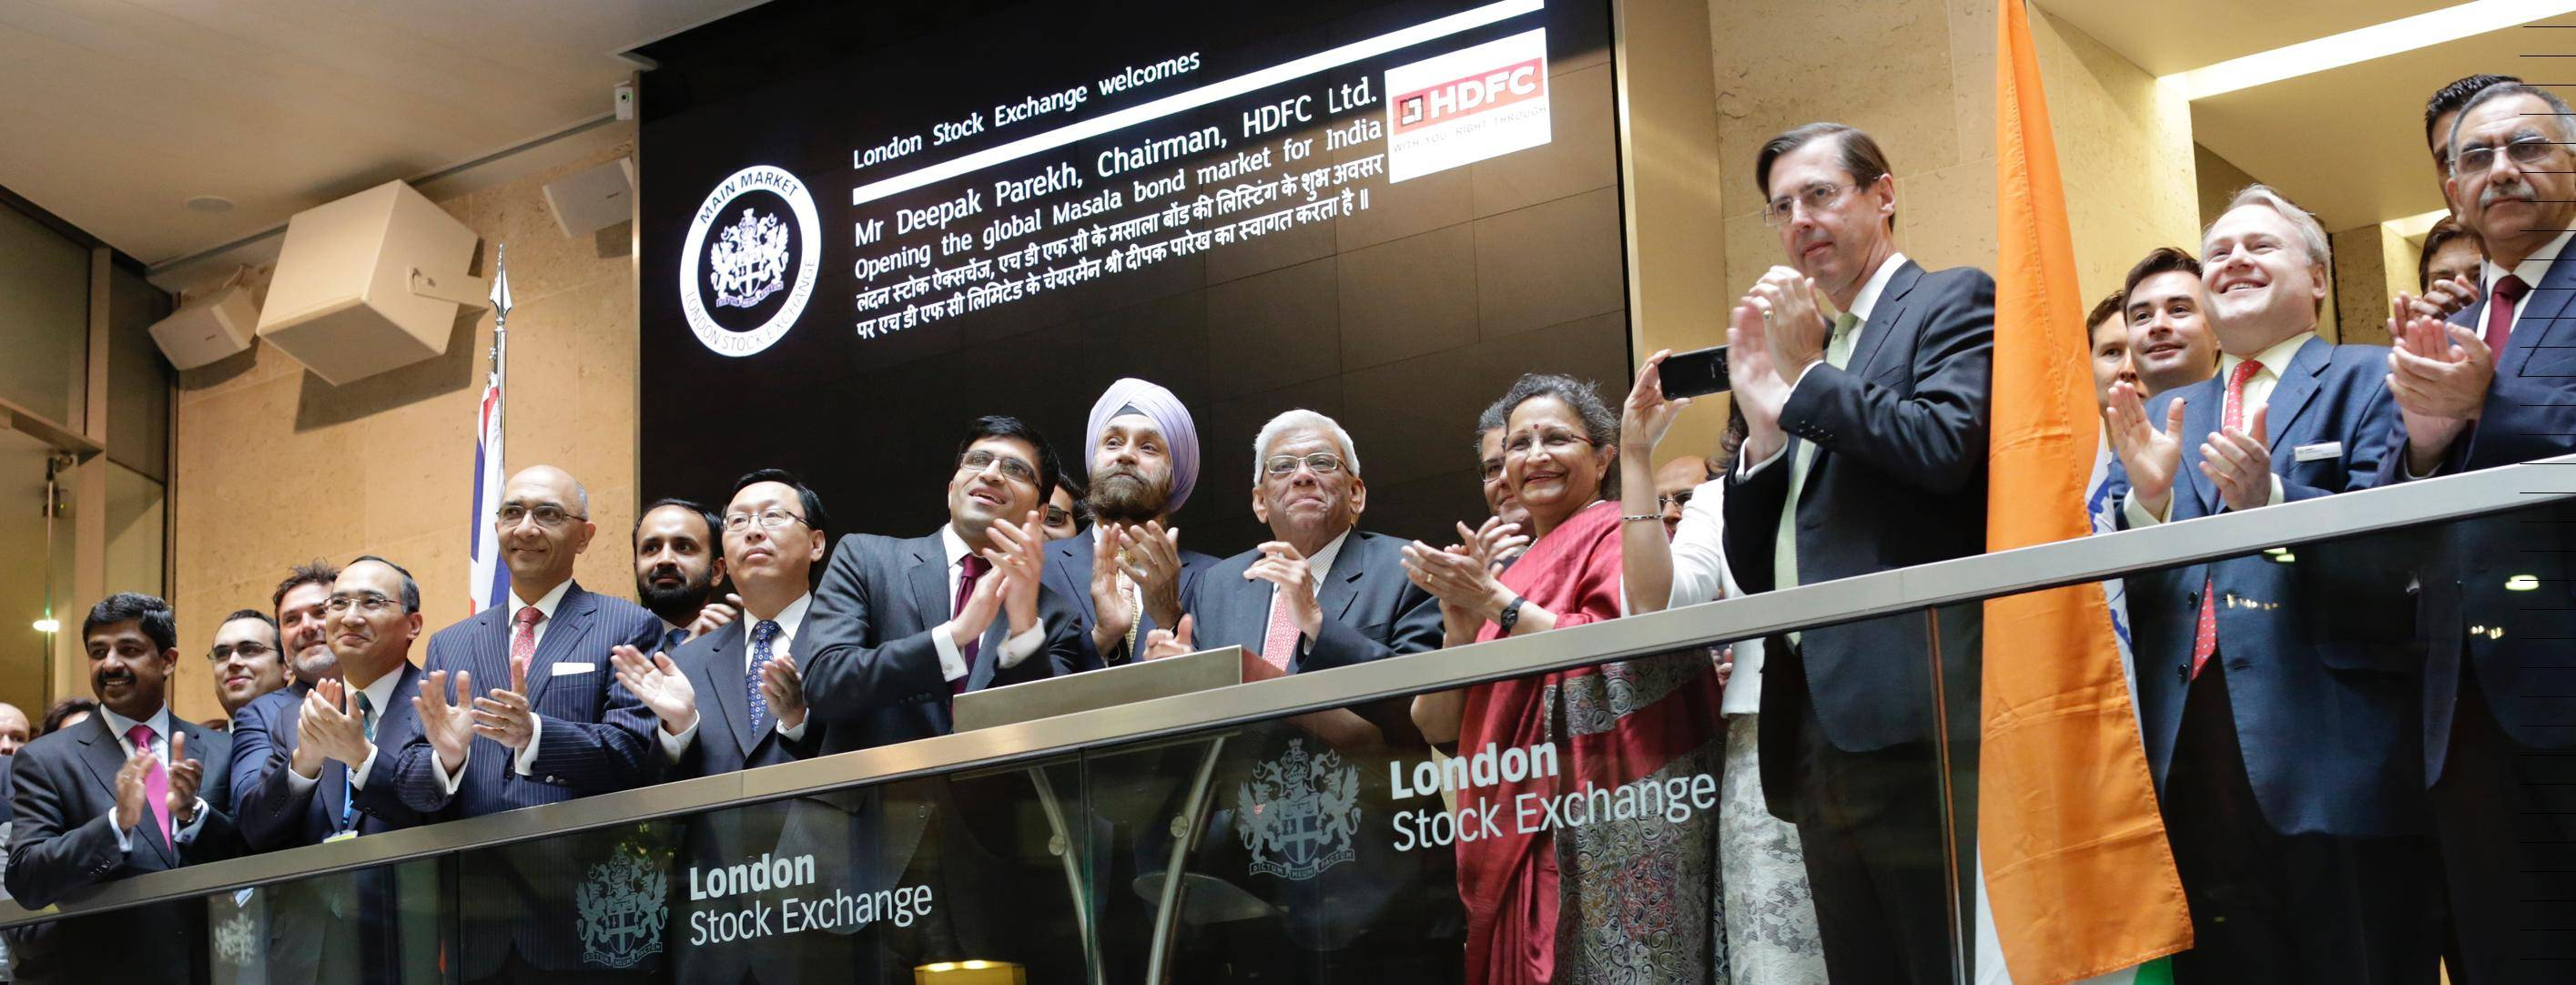 HDFC adds a dash of Masala to the London Stock Exchange